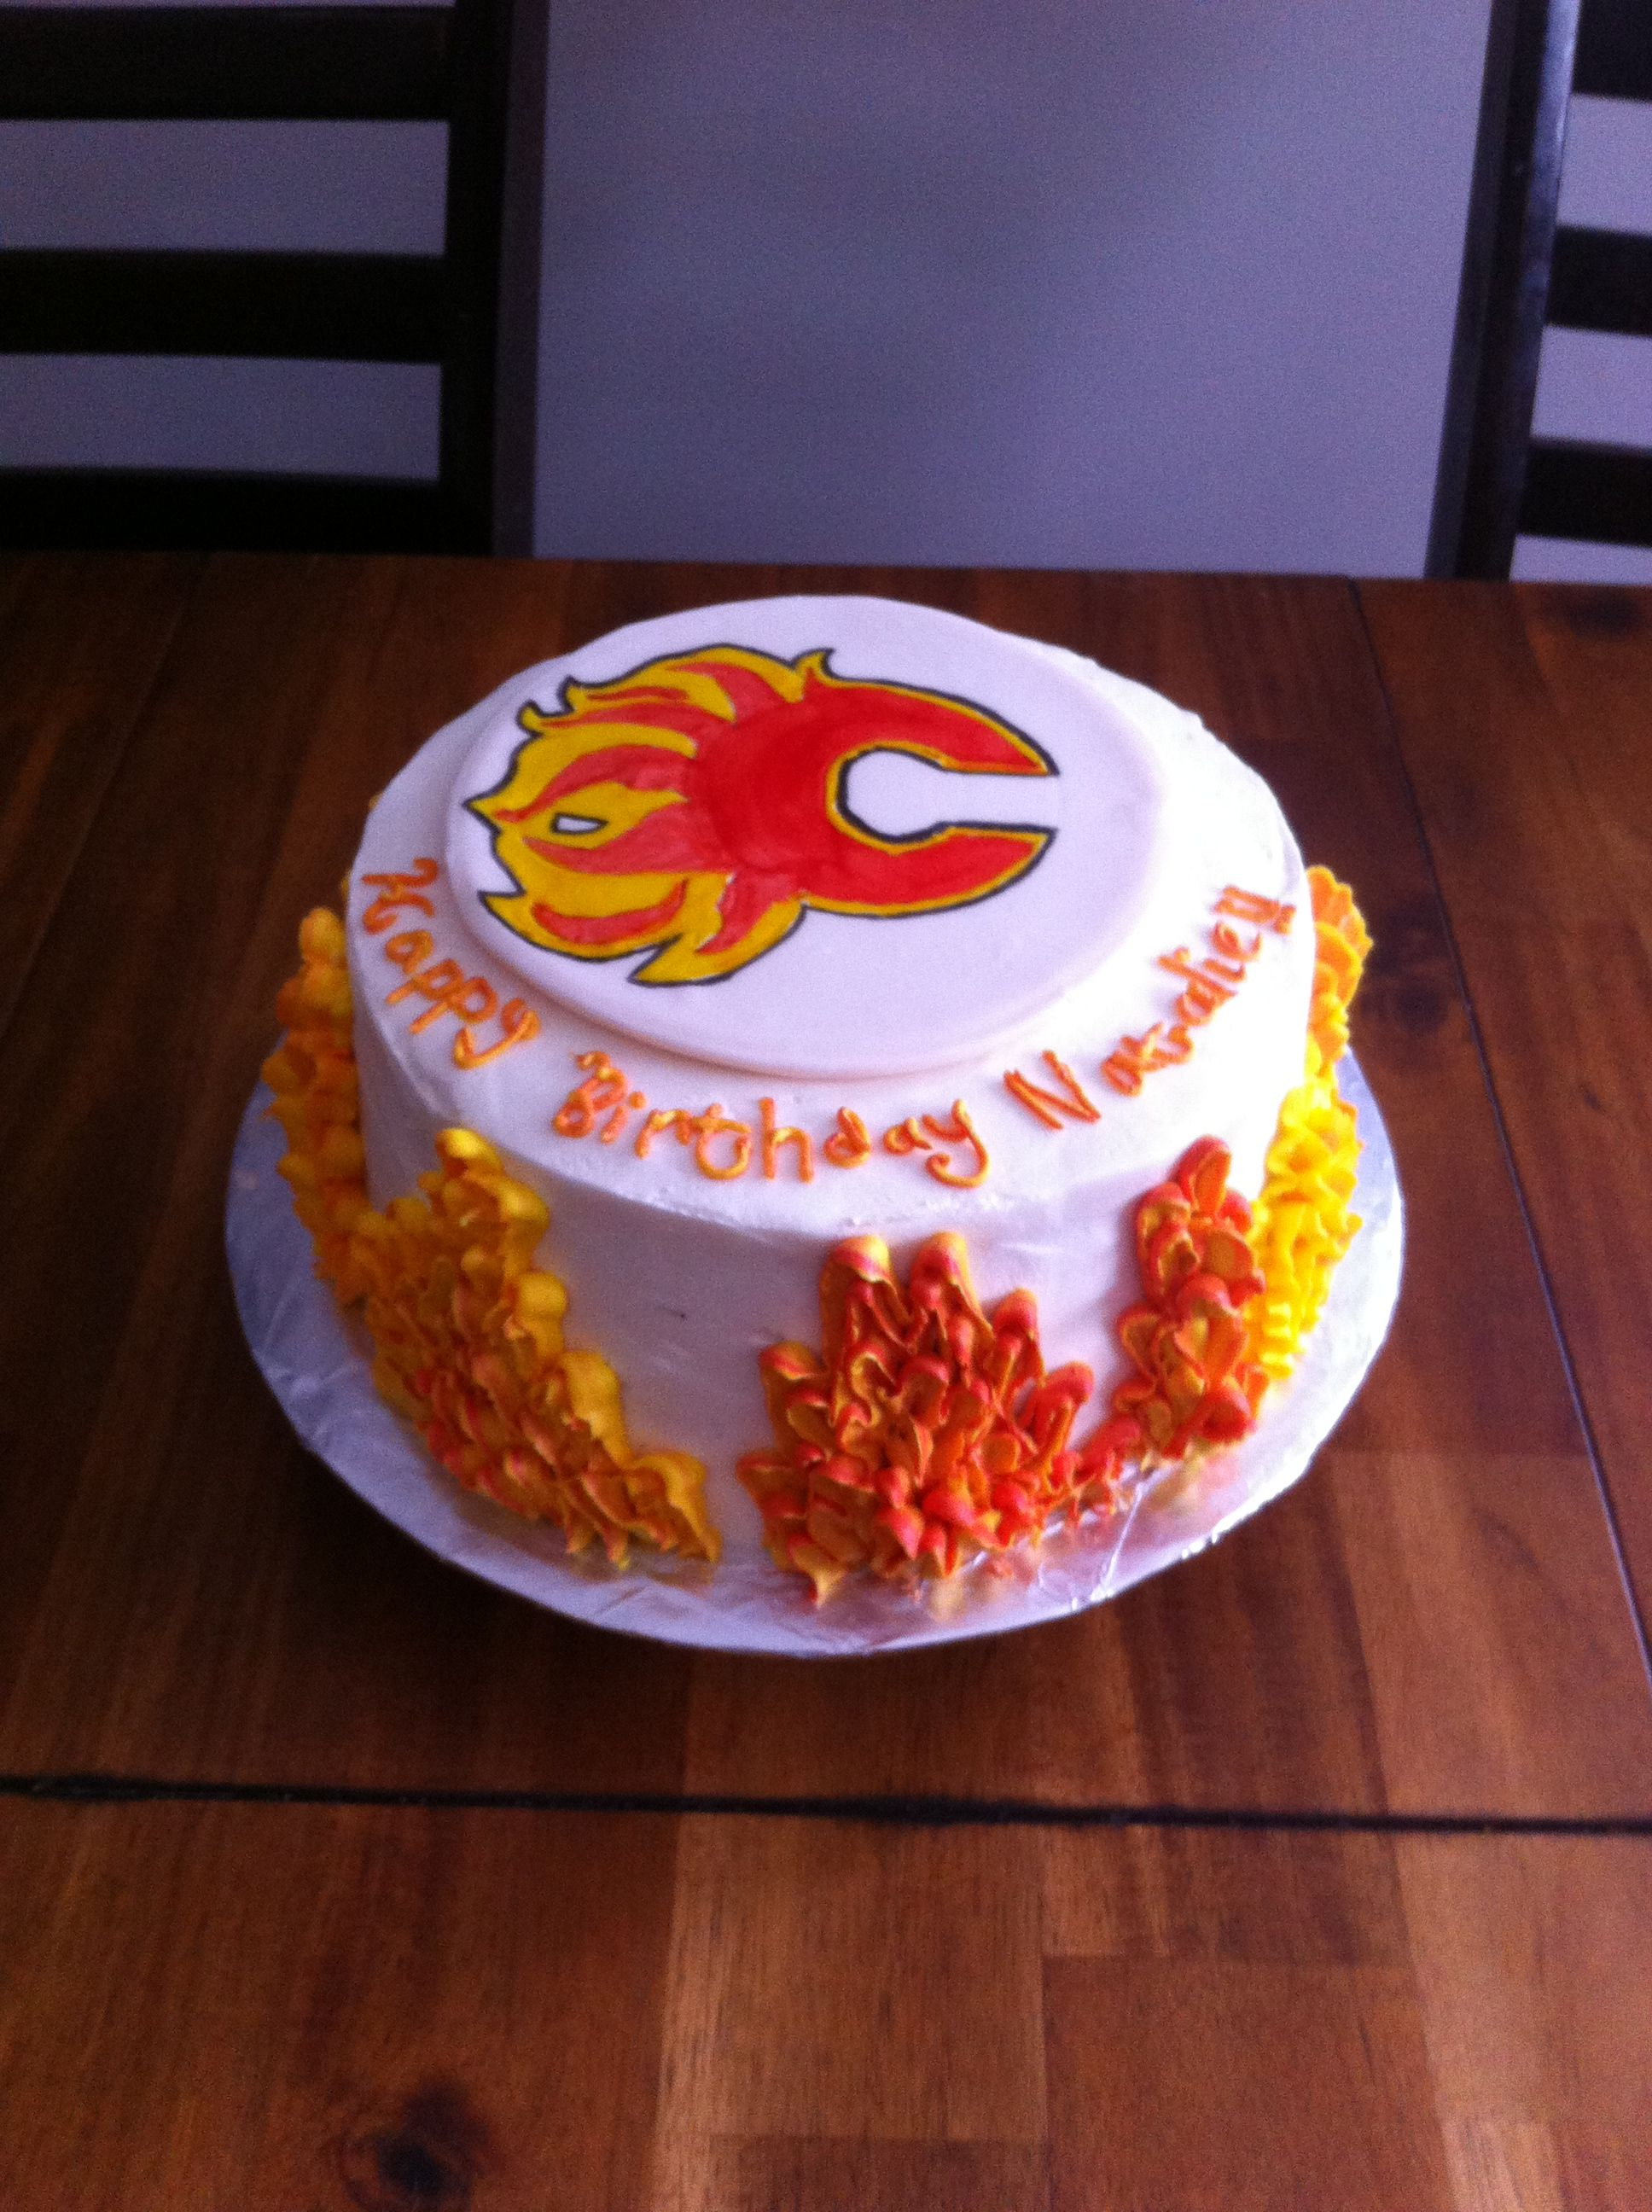 Calgary Flames Birthday Cake Flames Around The Side Of The Cake